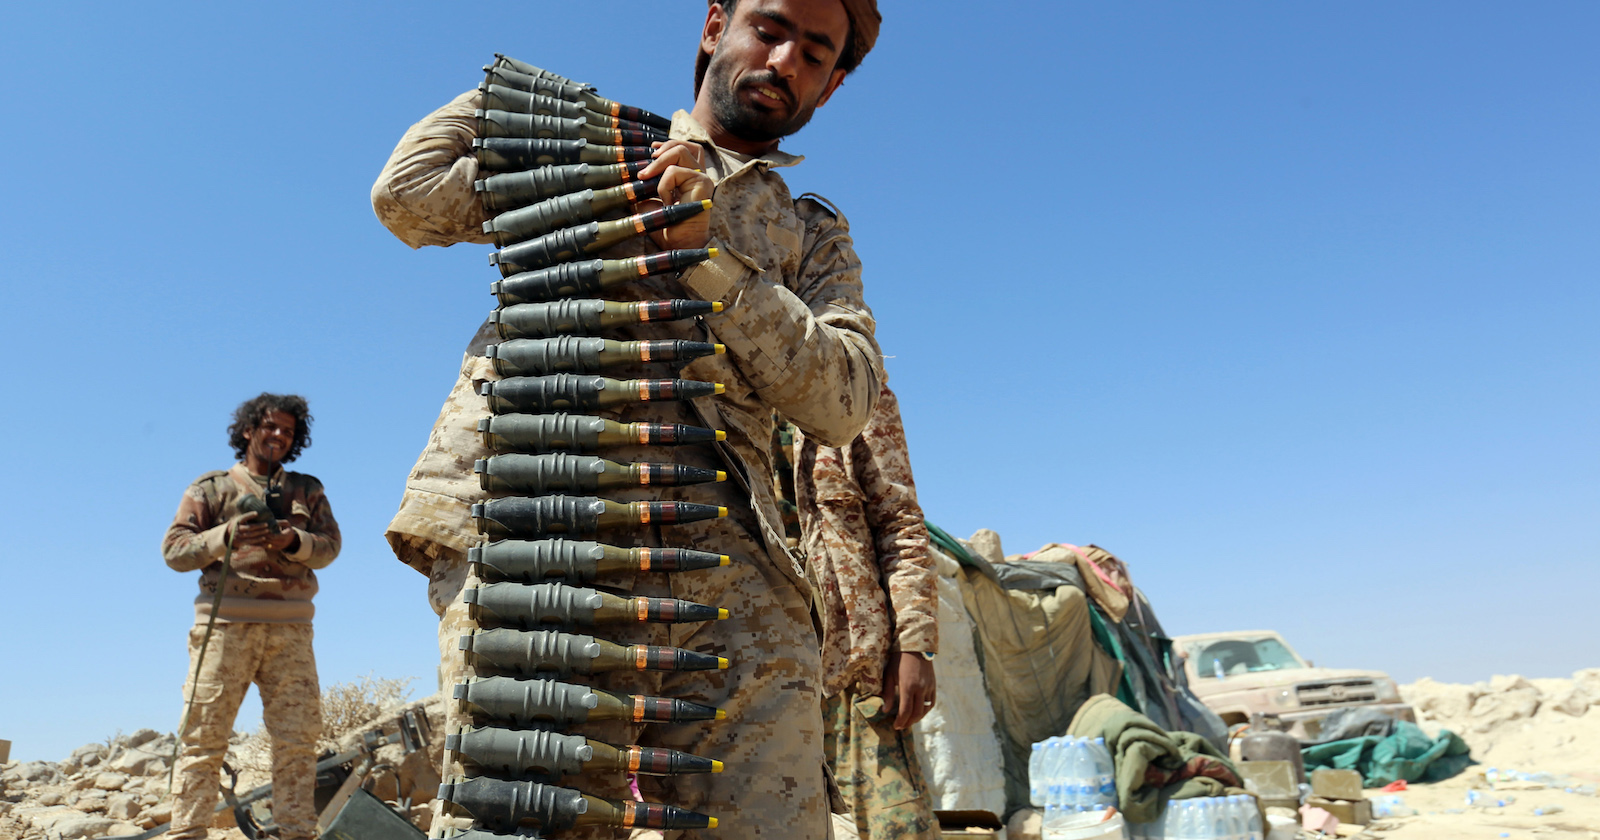 Saudi Arabia was the world's second largest arms importer in 2017 (Photo: Abdullah al-Qadry via Getty)